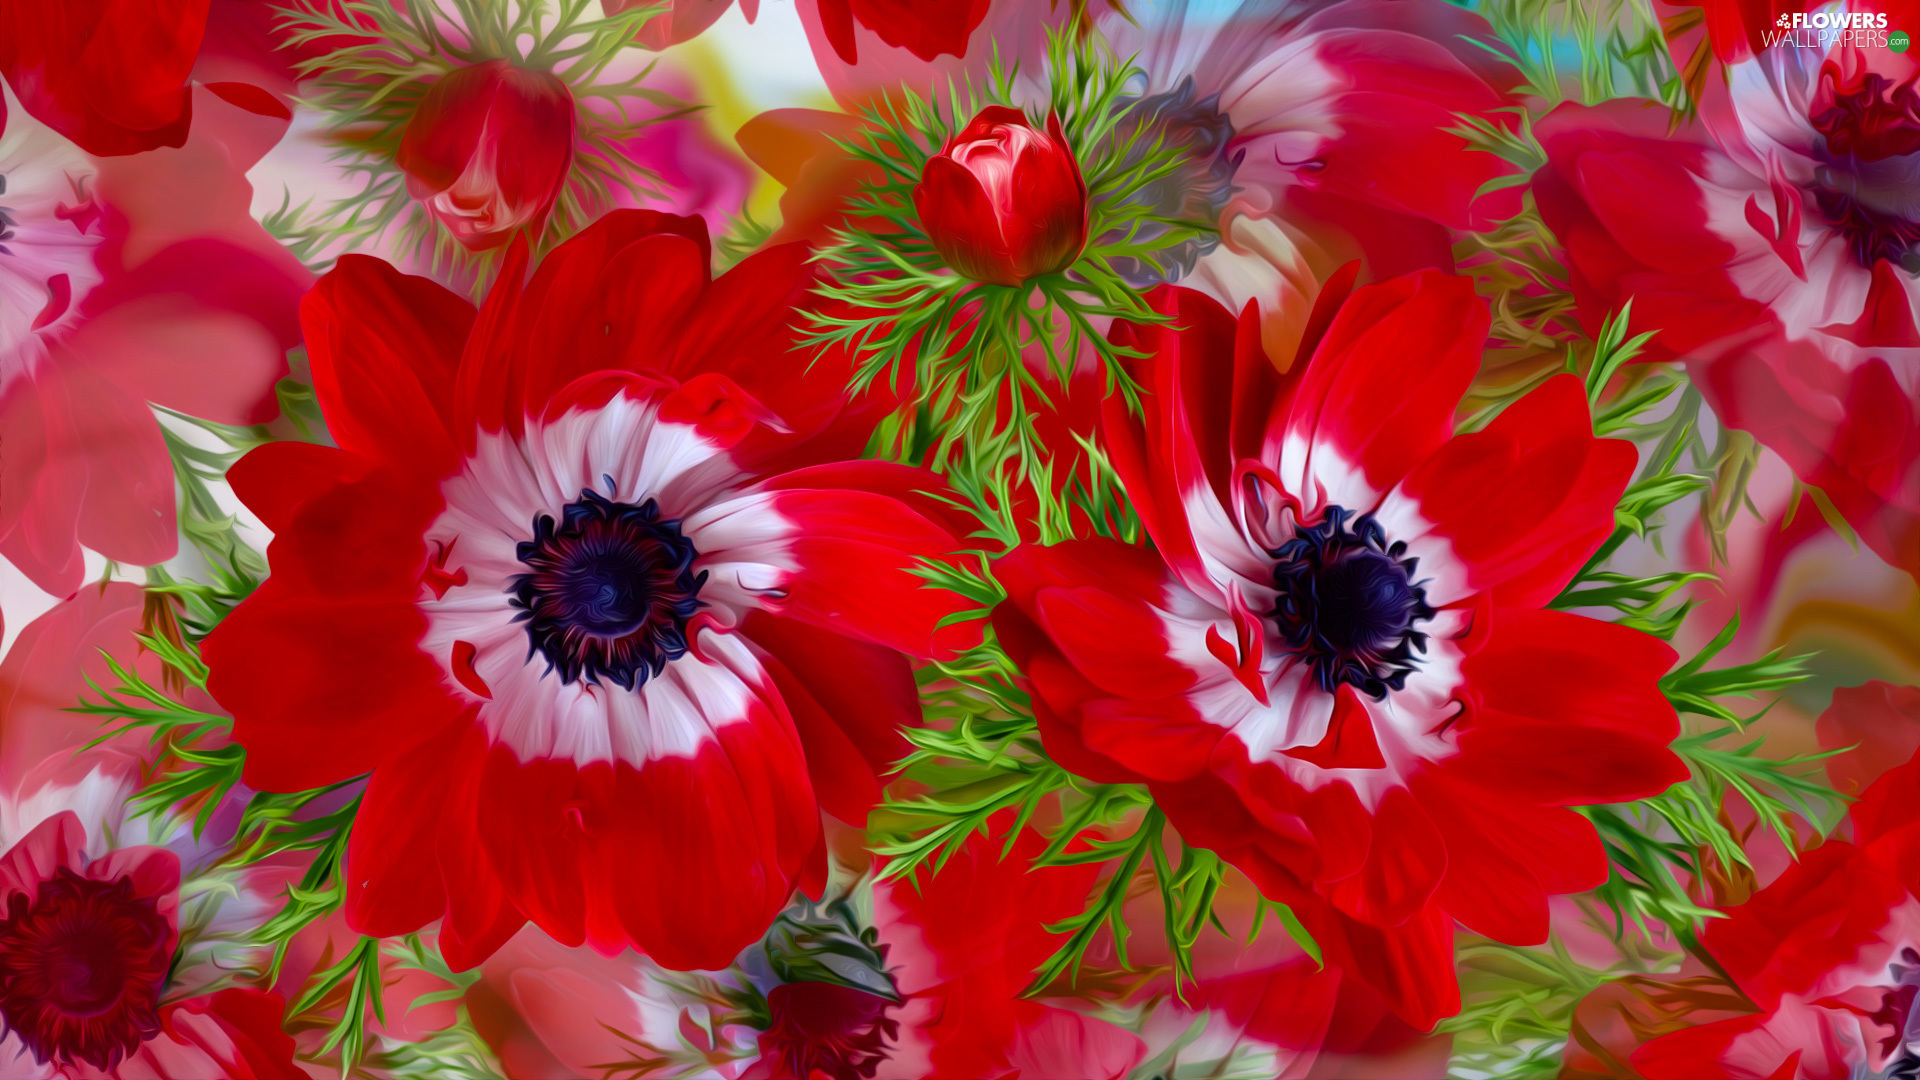 Flowers, Red, graphics, Anemones